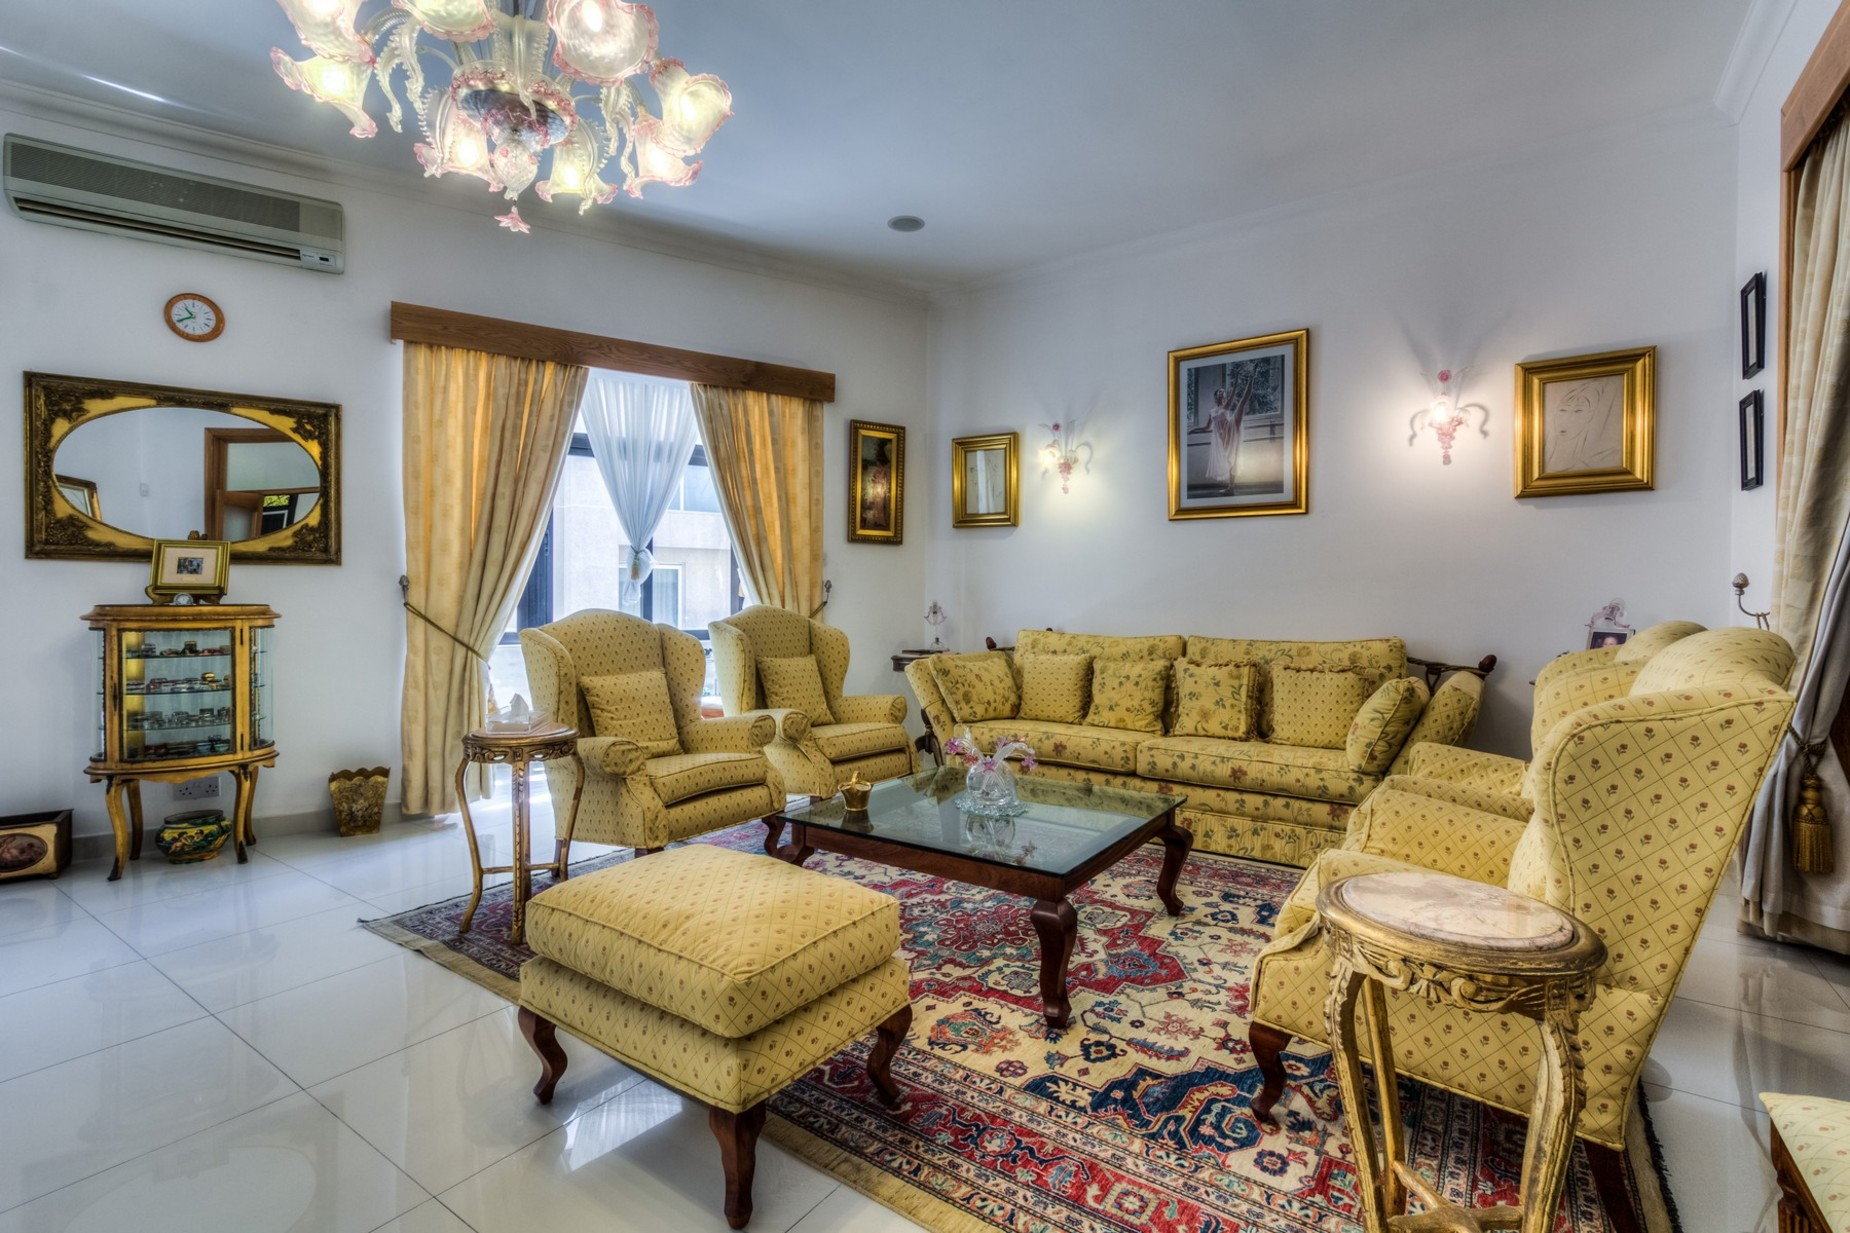 5 bed Apartment For Sale in Sliema, Sliema - thumb 3